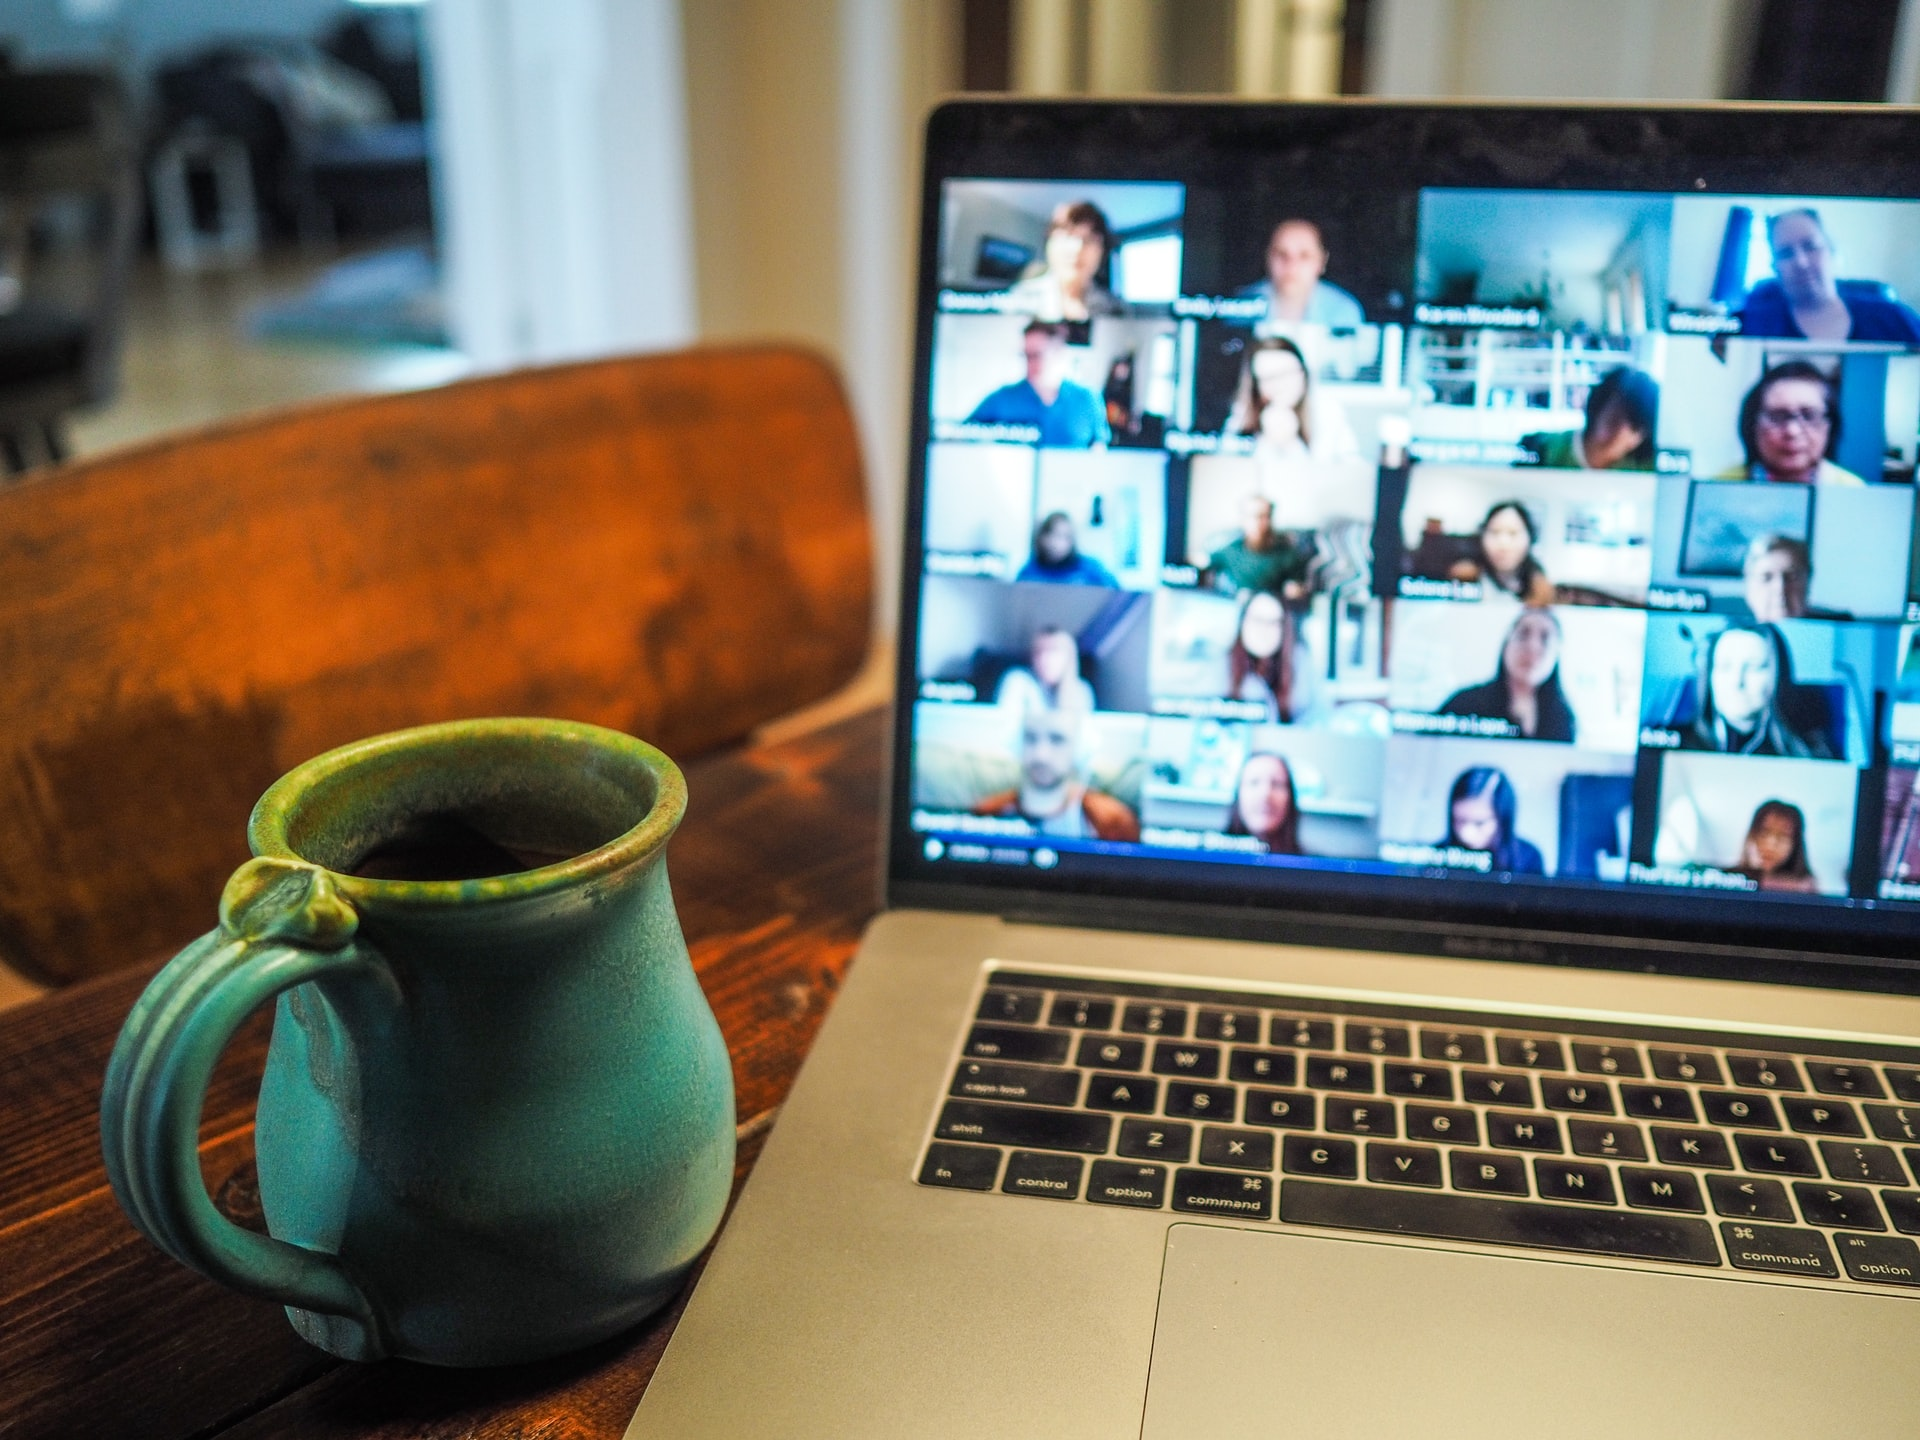 The 16 best online meeting and video conferencing tools